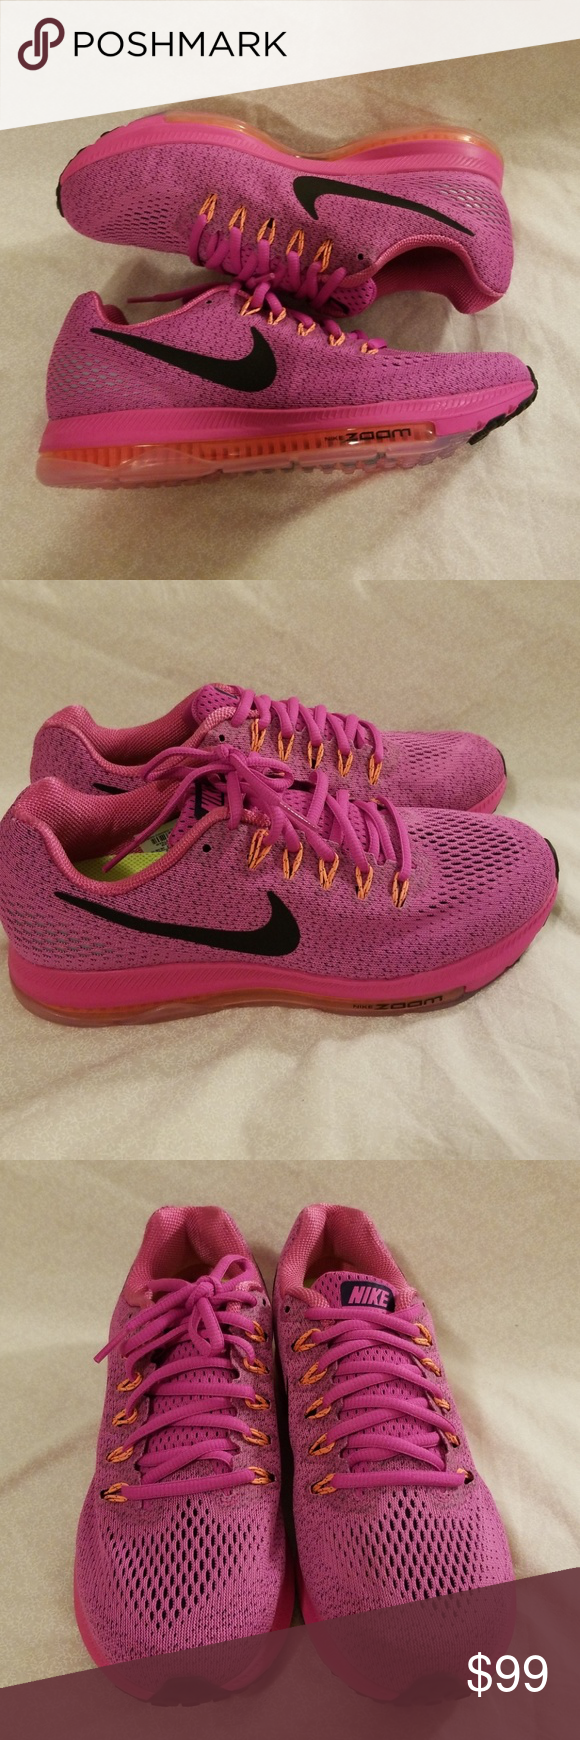 780abbf5079a6 Nike Wmns Zoom All Out Low Running Shoes NWOB Nike Womens Zoom All Out Low  Size: 9 Fire Pink/Black- Bright Mango 878671 600 Msrp: $160.00 Nike Shoes  ...